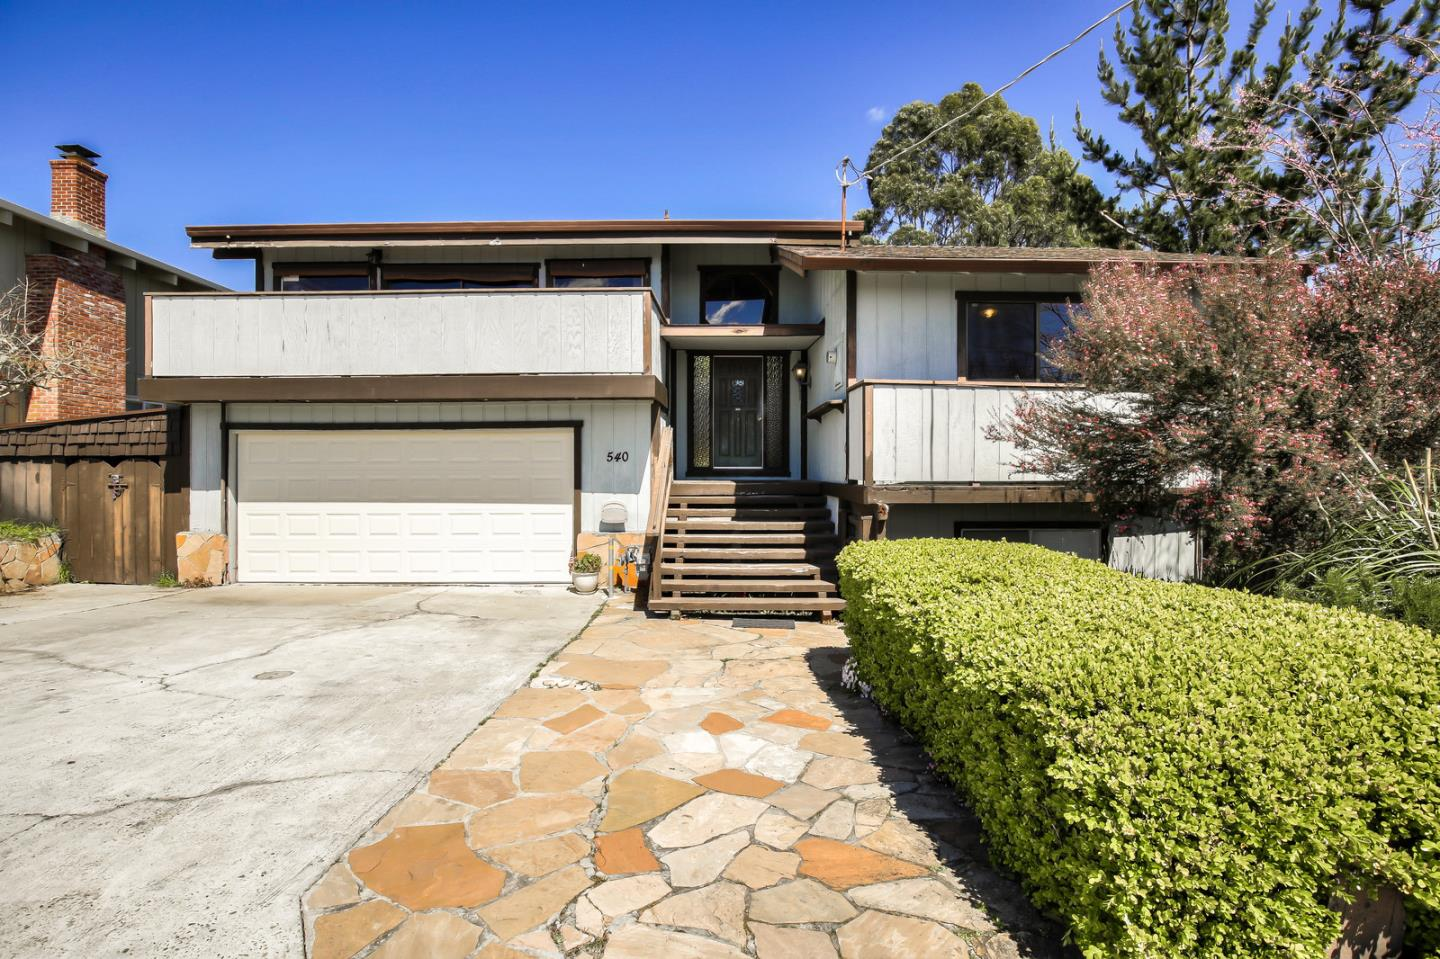 Detail Gallery Image 1 of 11 For 540 Cuesta Dr, Aptos, CA, 95003 - 3 Beds | 2 Baths